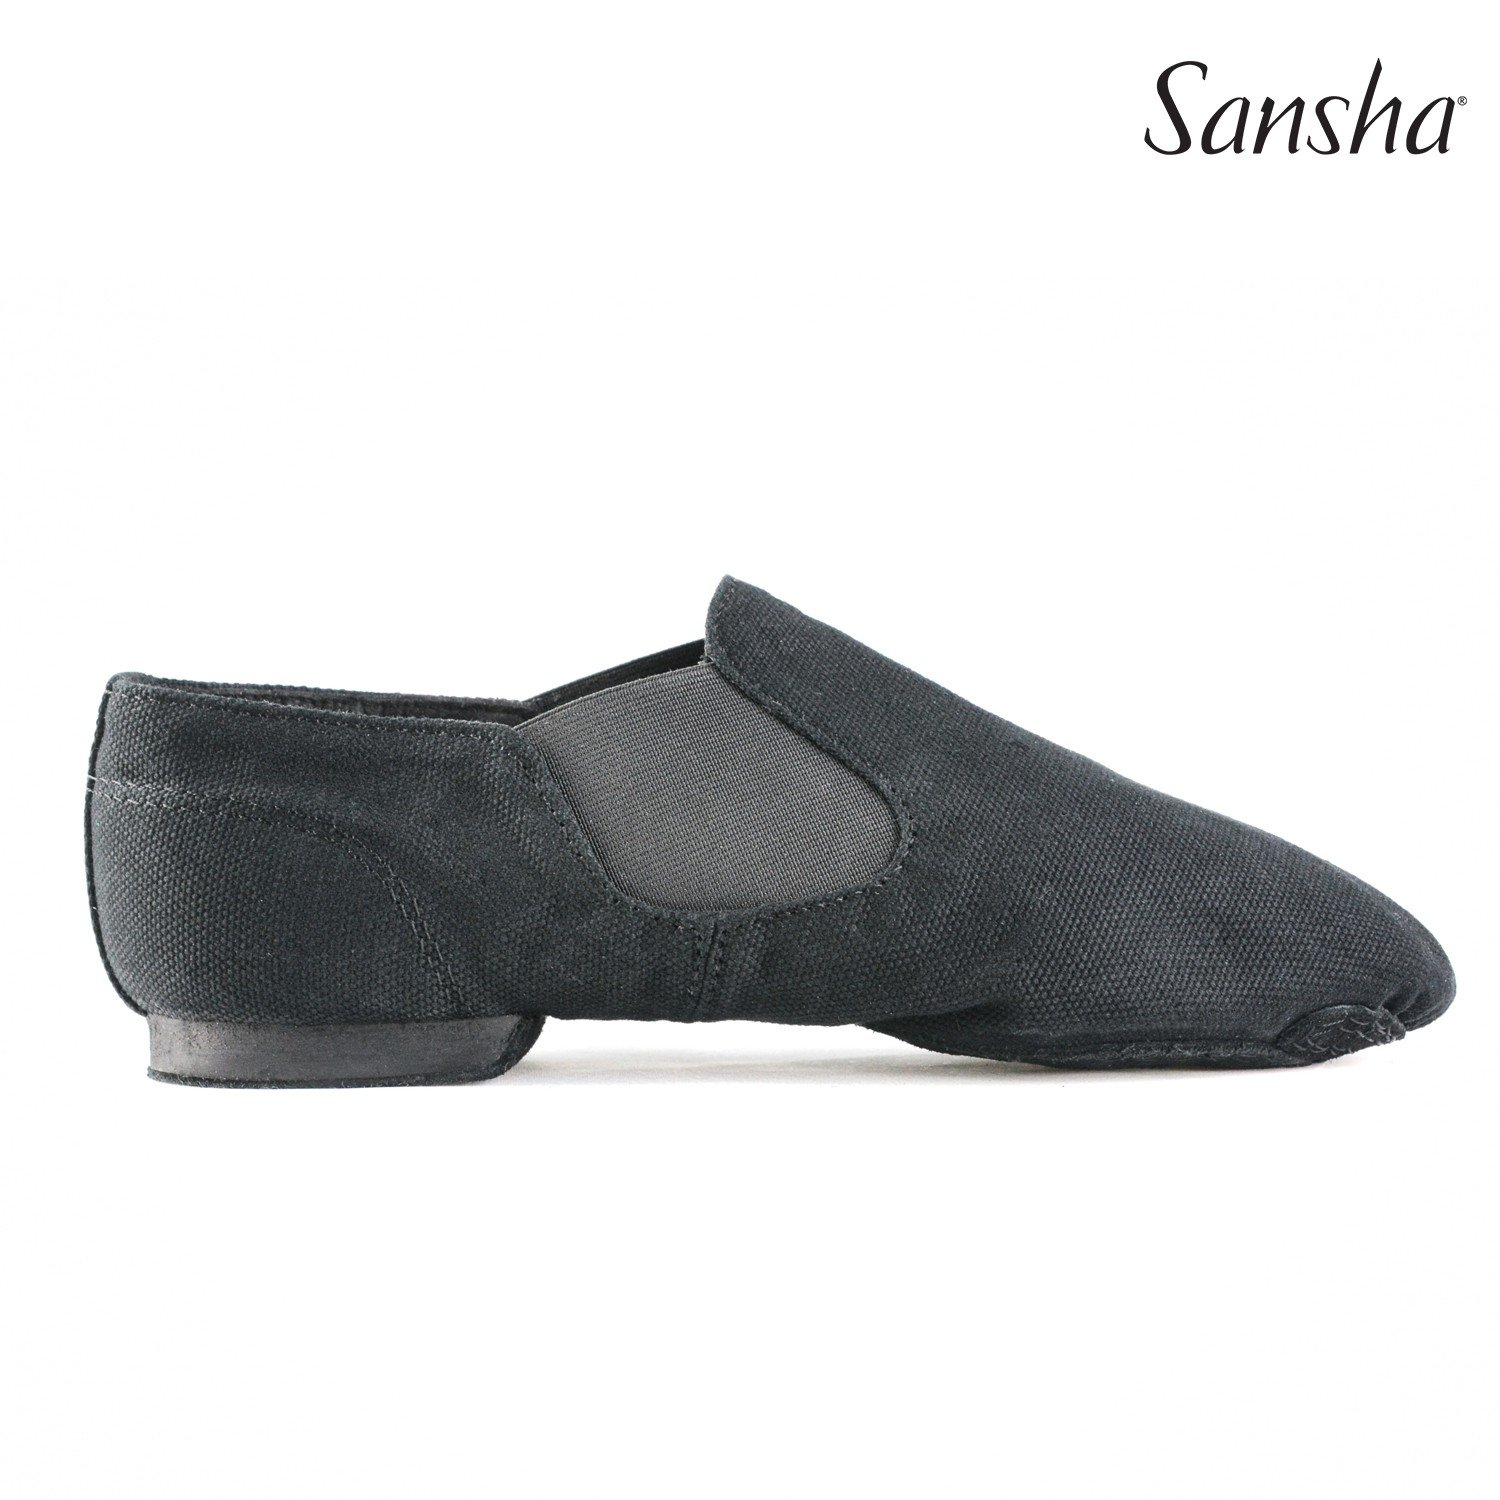 Sansha Js33c Adult Moderno Canvas Jazz Shoe